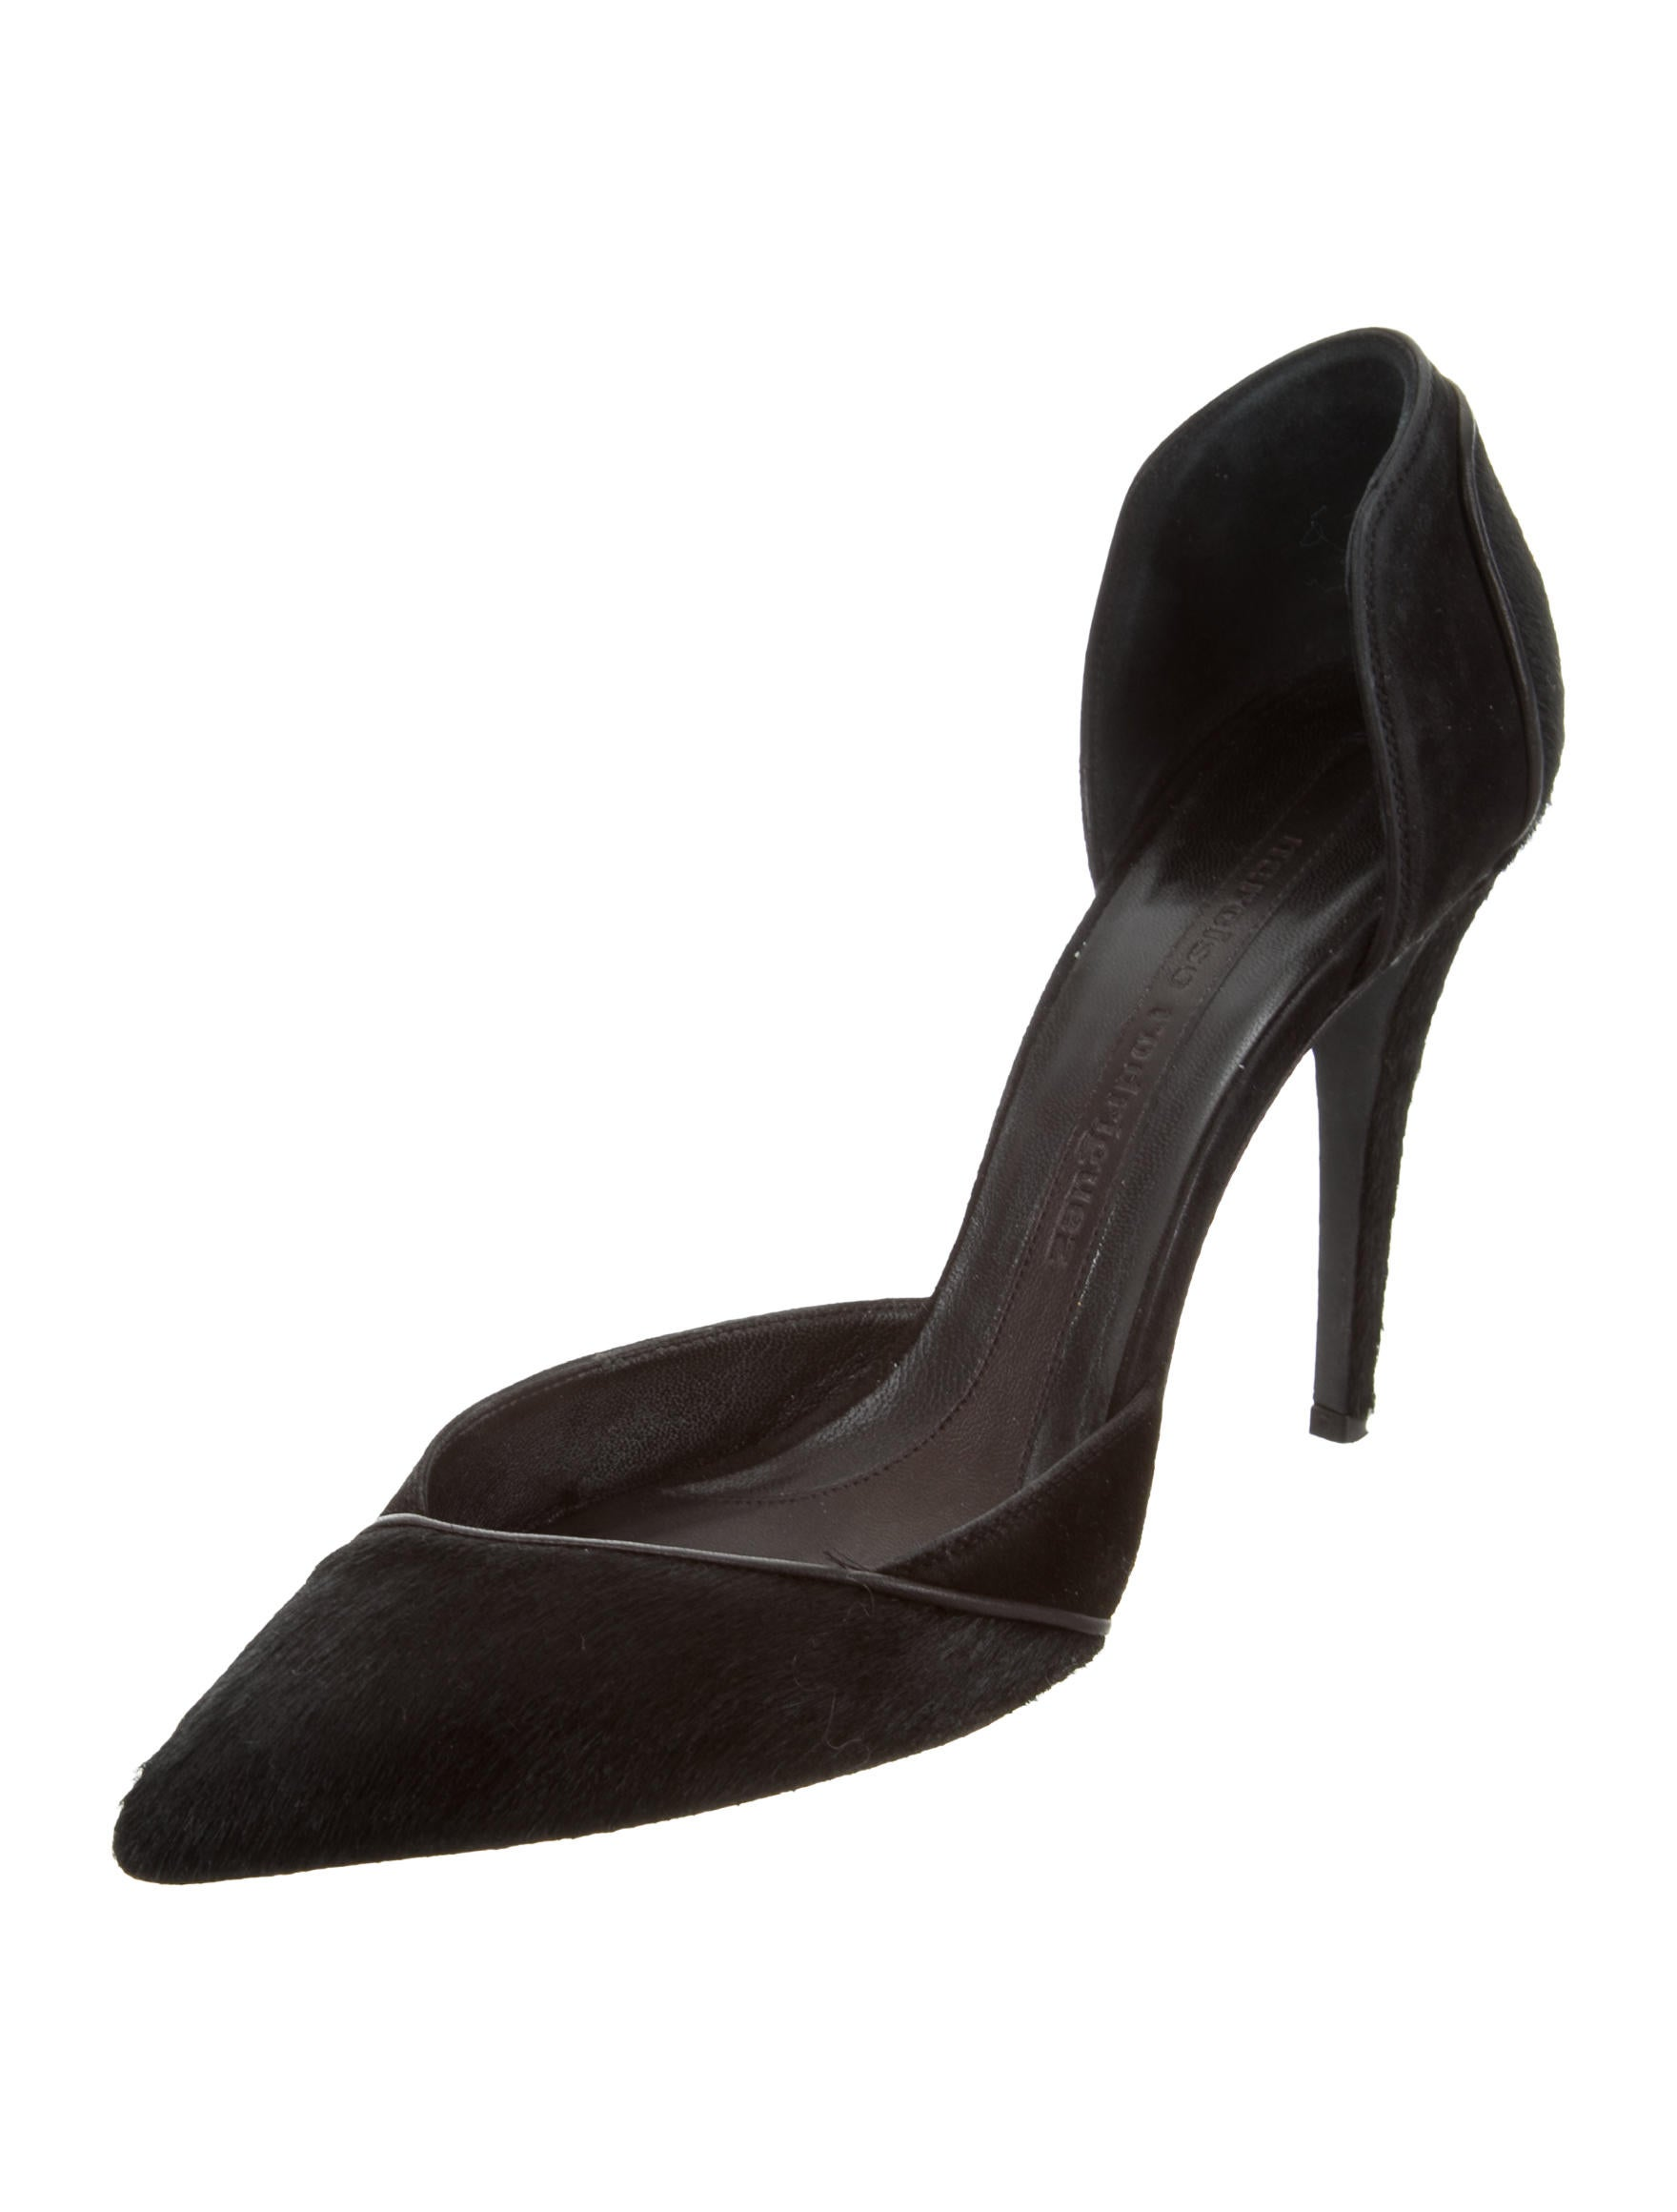 lowest price for sale outlet top quality Narciso Rodriguez Ponyhair D'Orsay Pumps outlet the cheapest pick a best for sale cheap brand new unisex nKqNAR